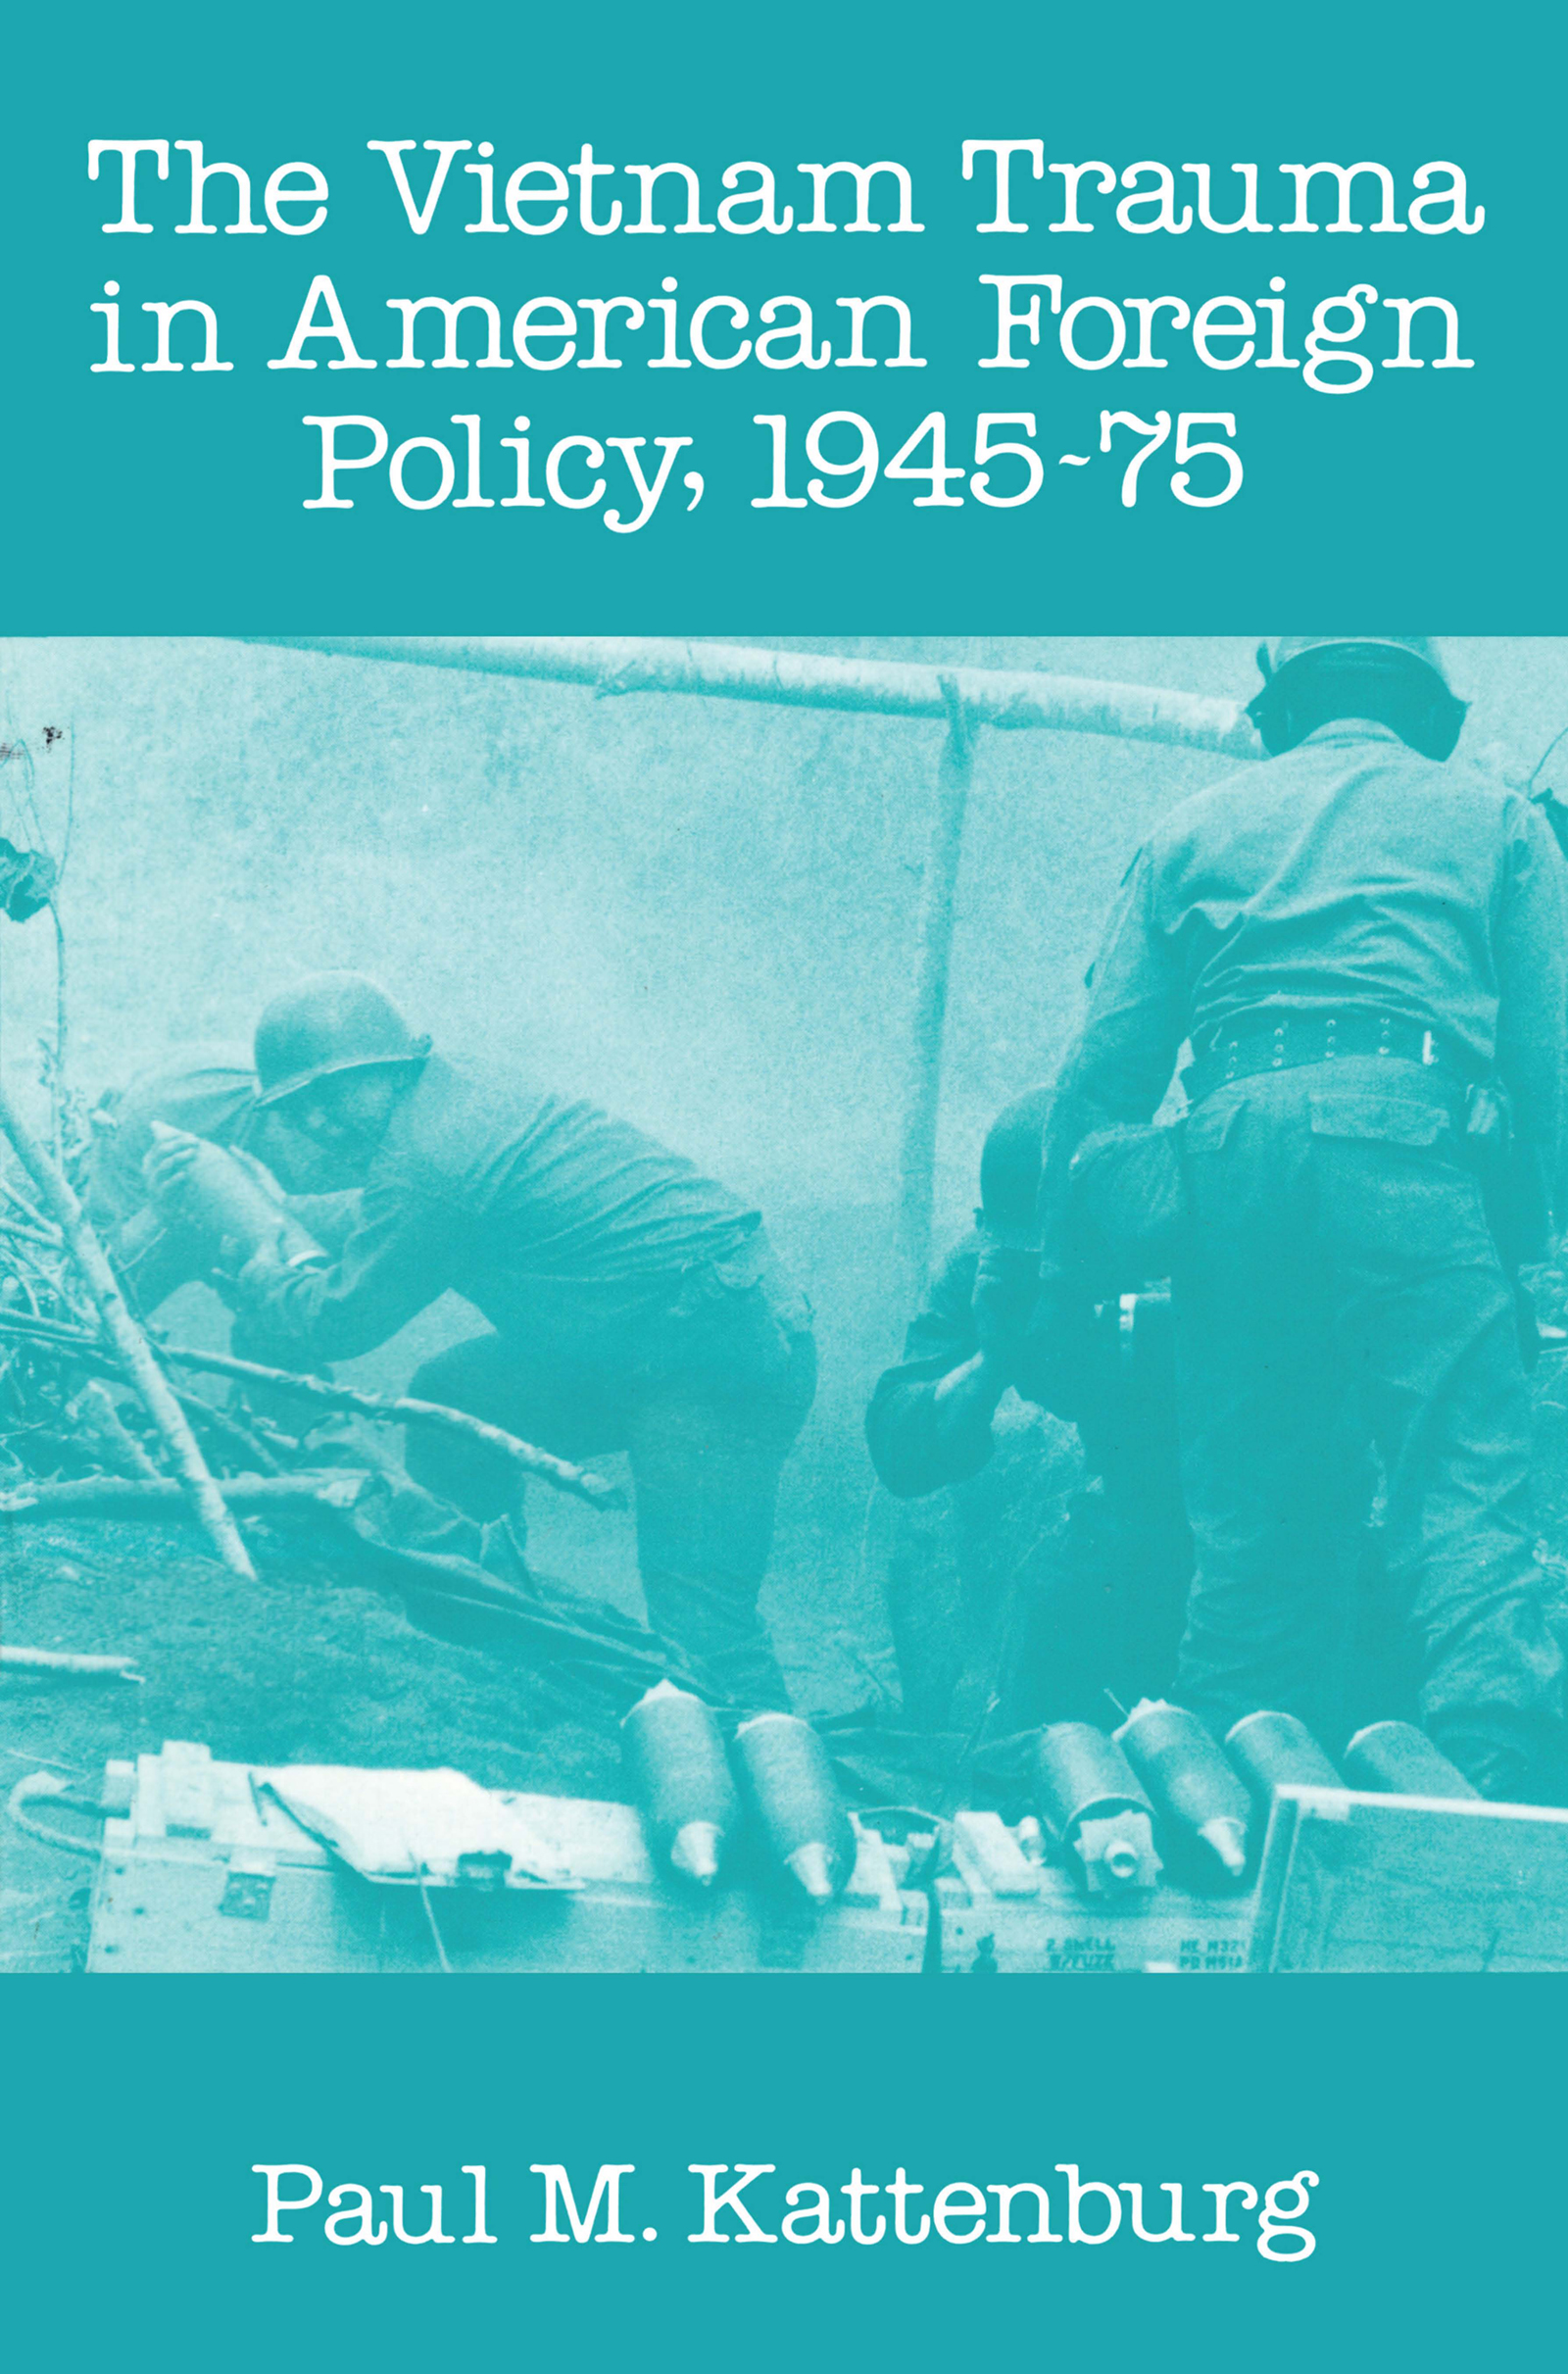 Vietnam Trauma in American Foreign Policy: 1945-75 book cover